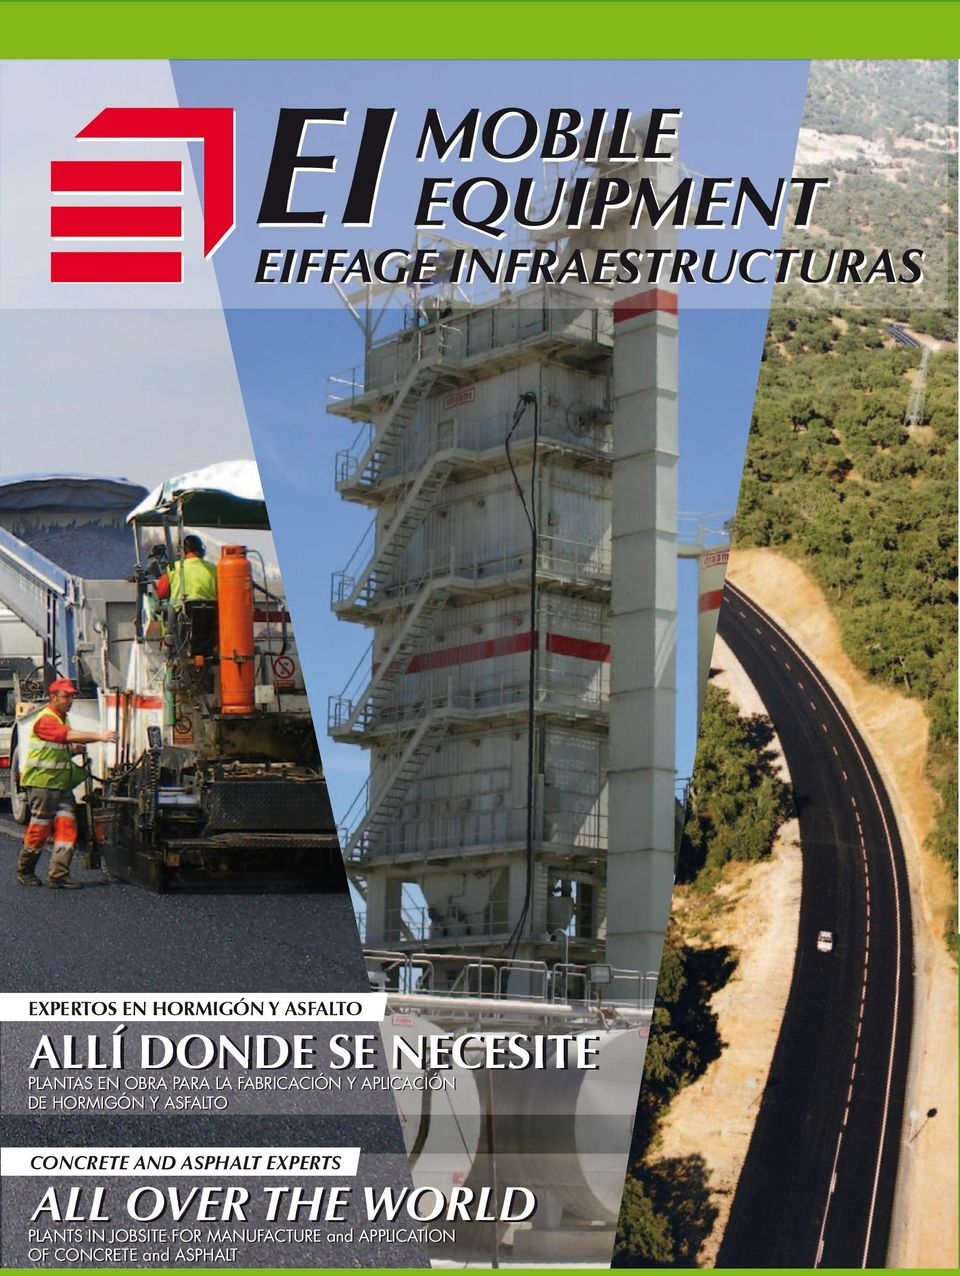 ASFALTO CONCRETE AND ASPHALT EXPERTS ALL OVER THE WORLD